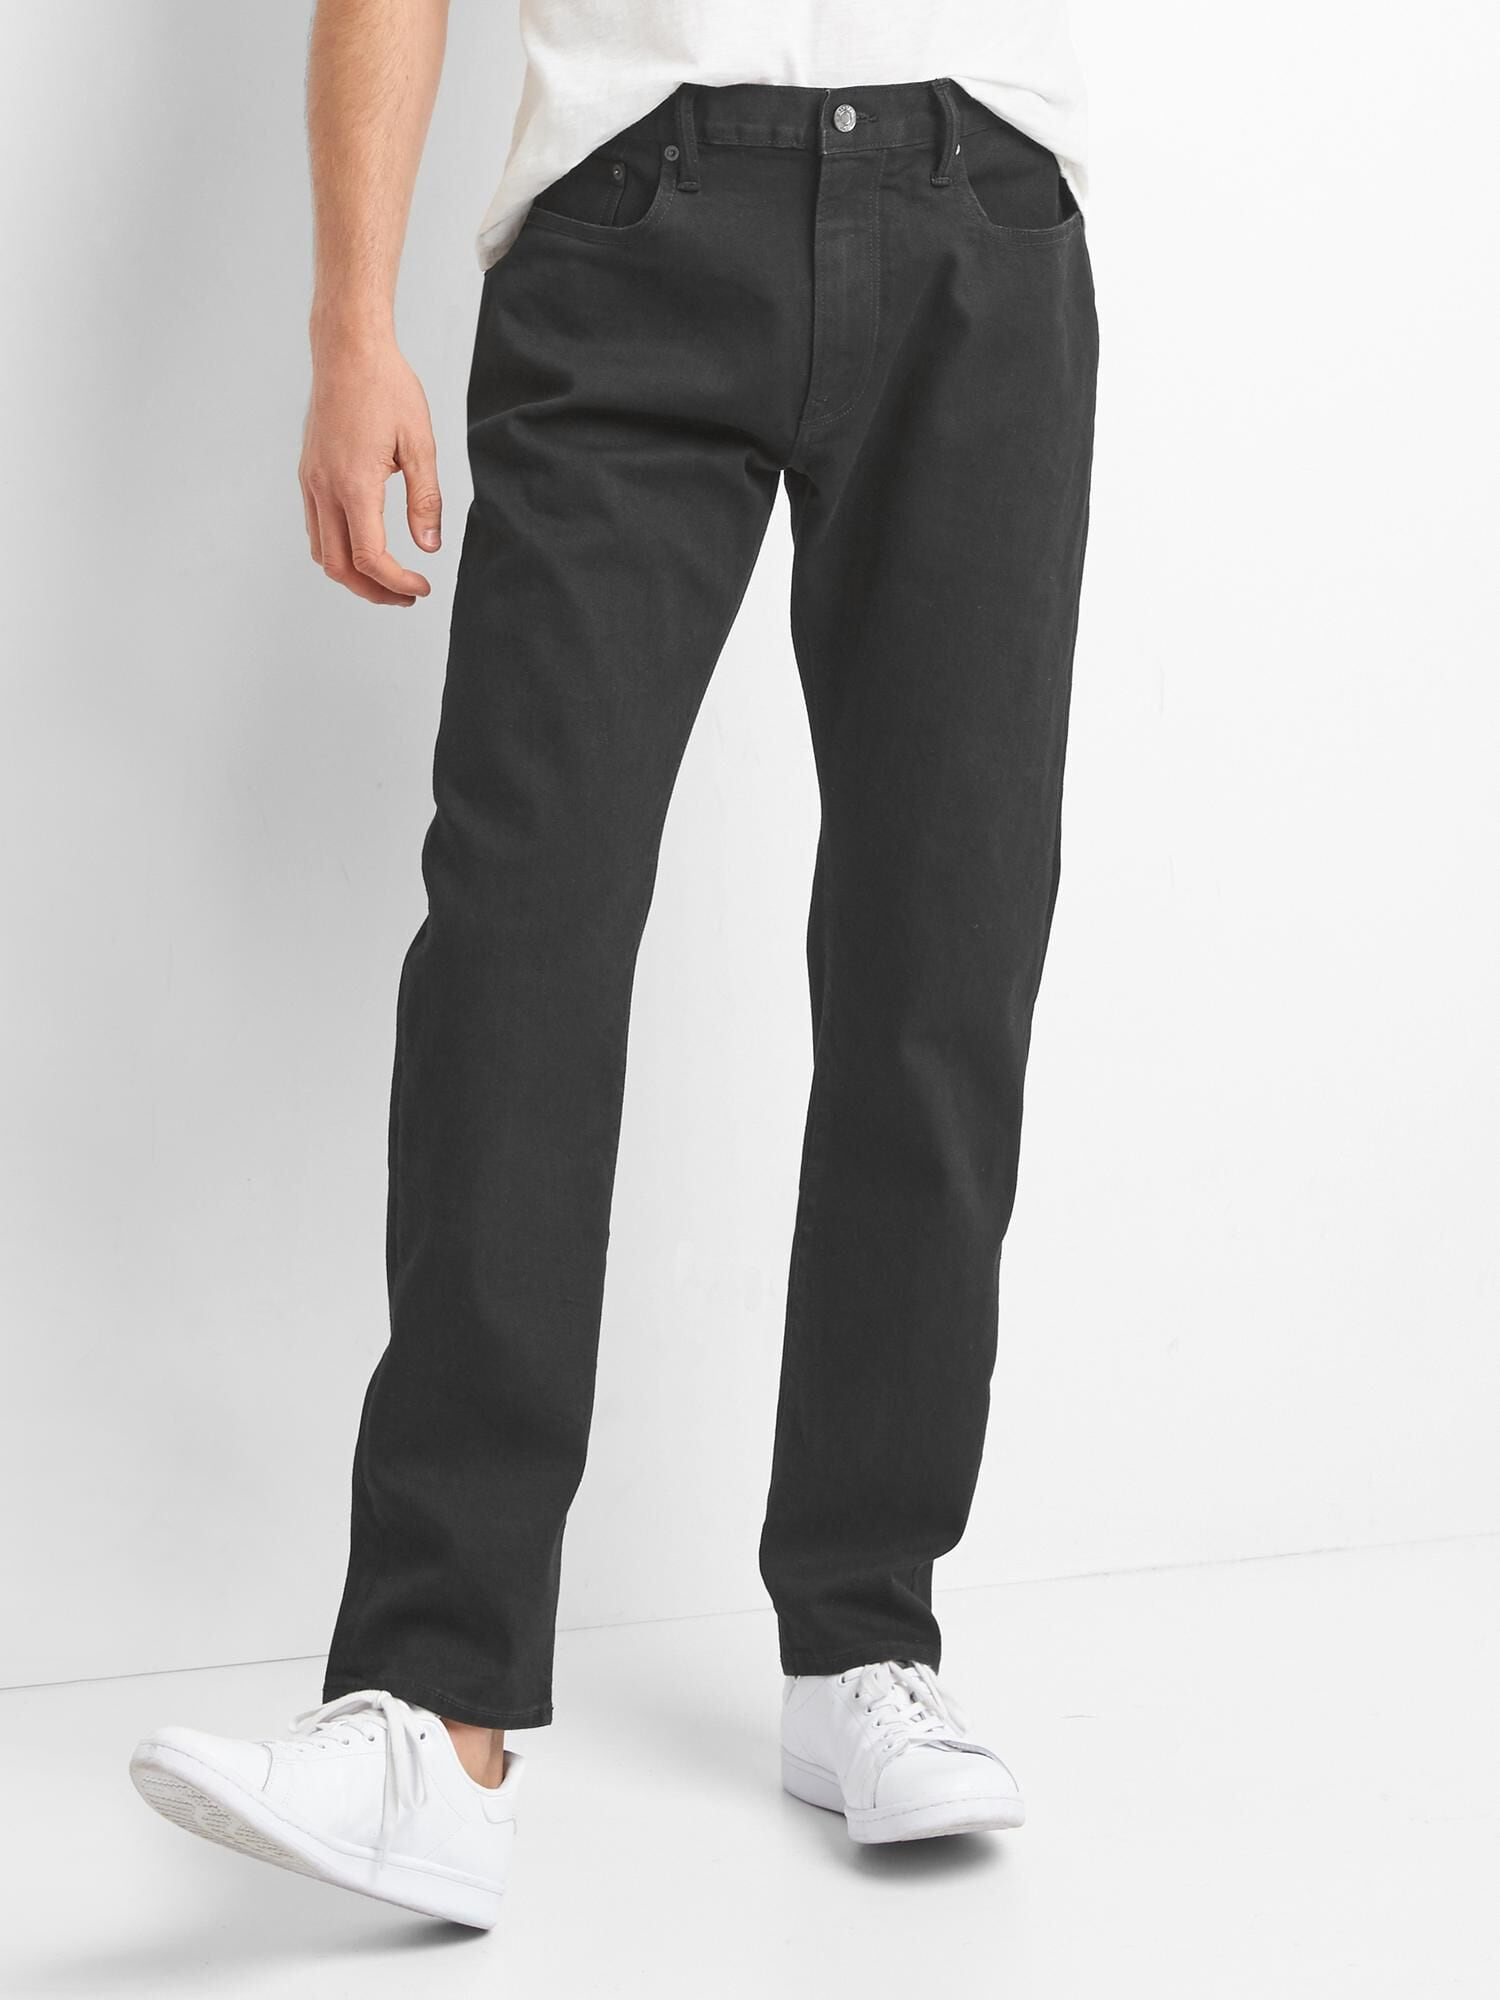 2a3011b8a99 Athletic Jeans with GapFlex